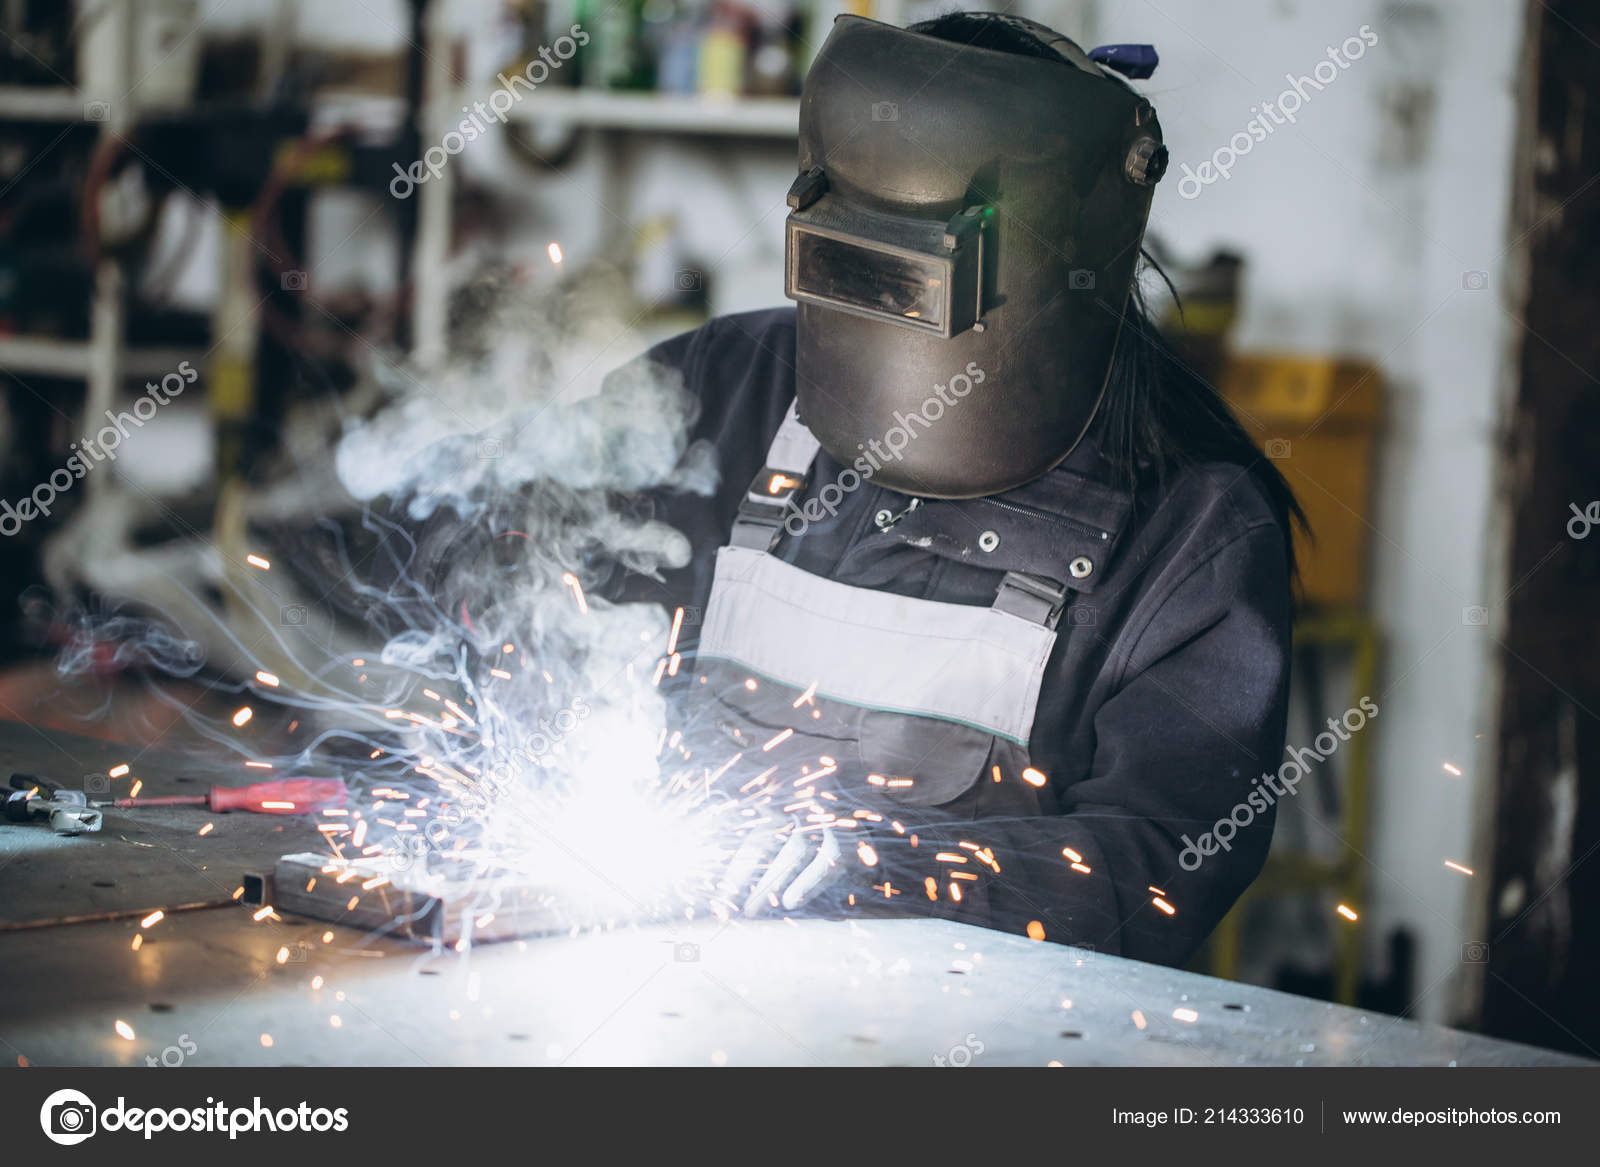 Strong Worthy Woman Welder Doing Hard Job Car Motorcycle Repair Stock Photo C Duxx73 214333610